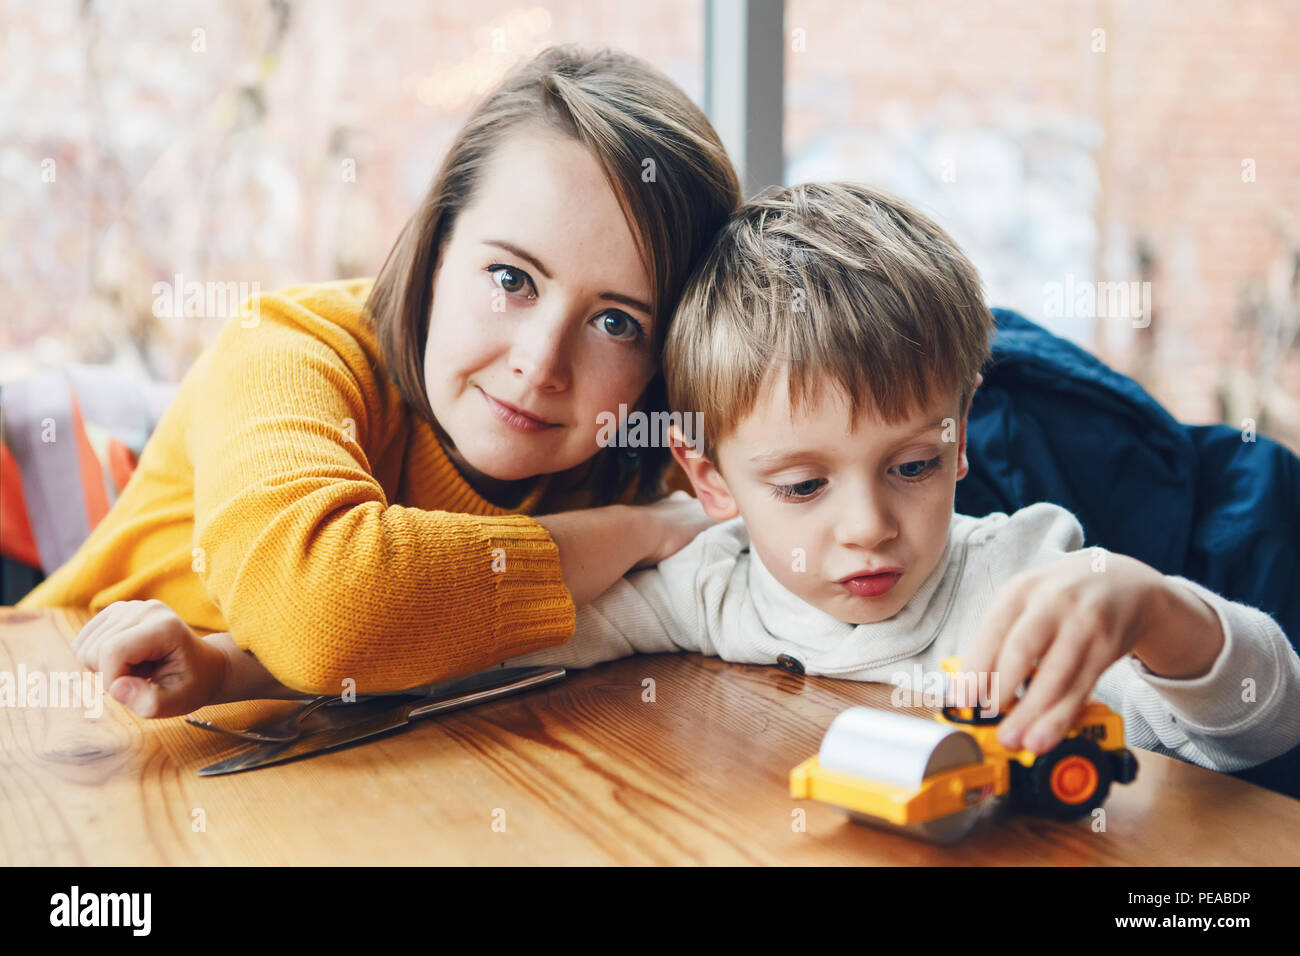 Portrait of white Caucasian happy family, mother and son, sitting in restaurant cafe at table, smiling playing with toy car, authentic lifestyle Stock Photo